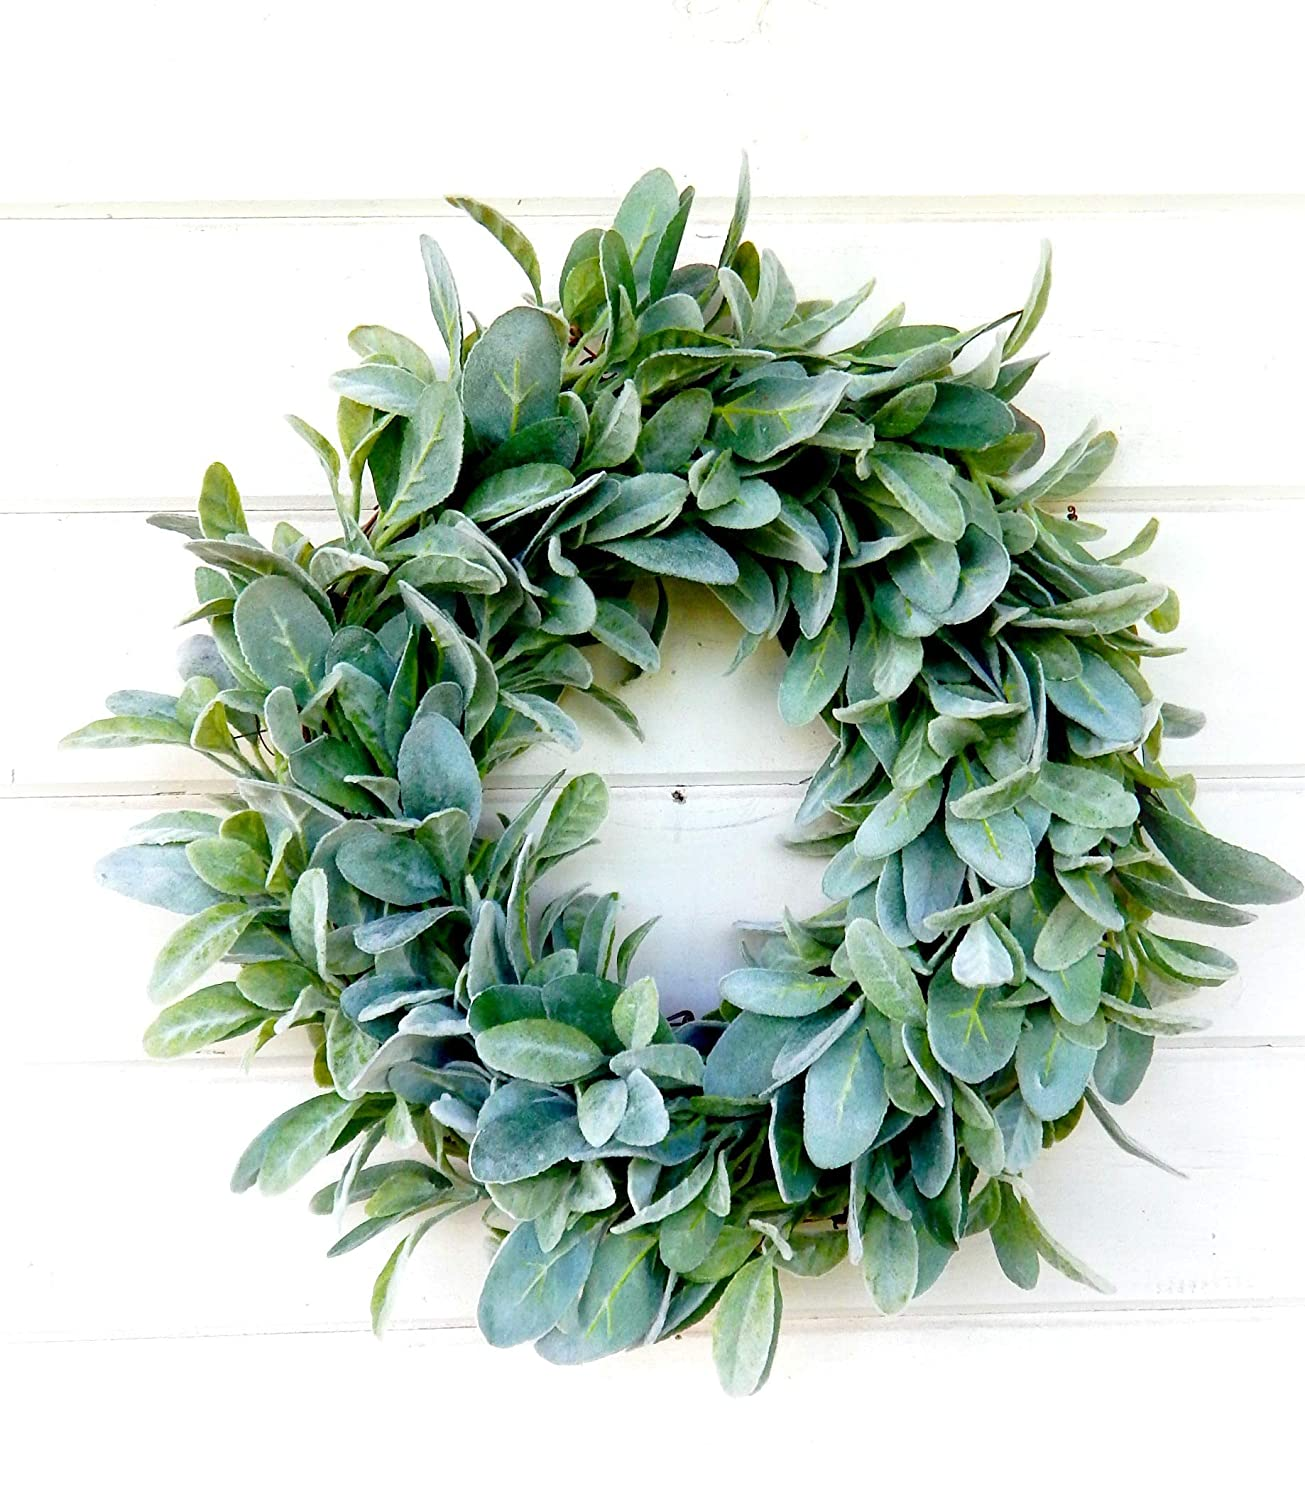 Farmhouse Wreath, Lambs Ear Wreath, Farmhouse Decor, Fall Wreath, Winter Wreath, Spring Wreath, Summer Wreath, Christmas Wreath, Year Round Wreath, Door Decor